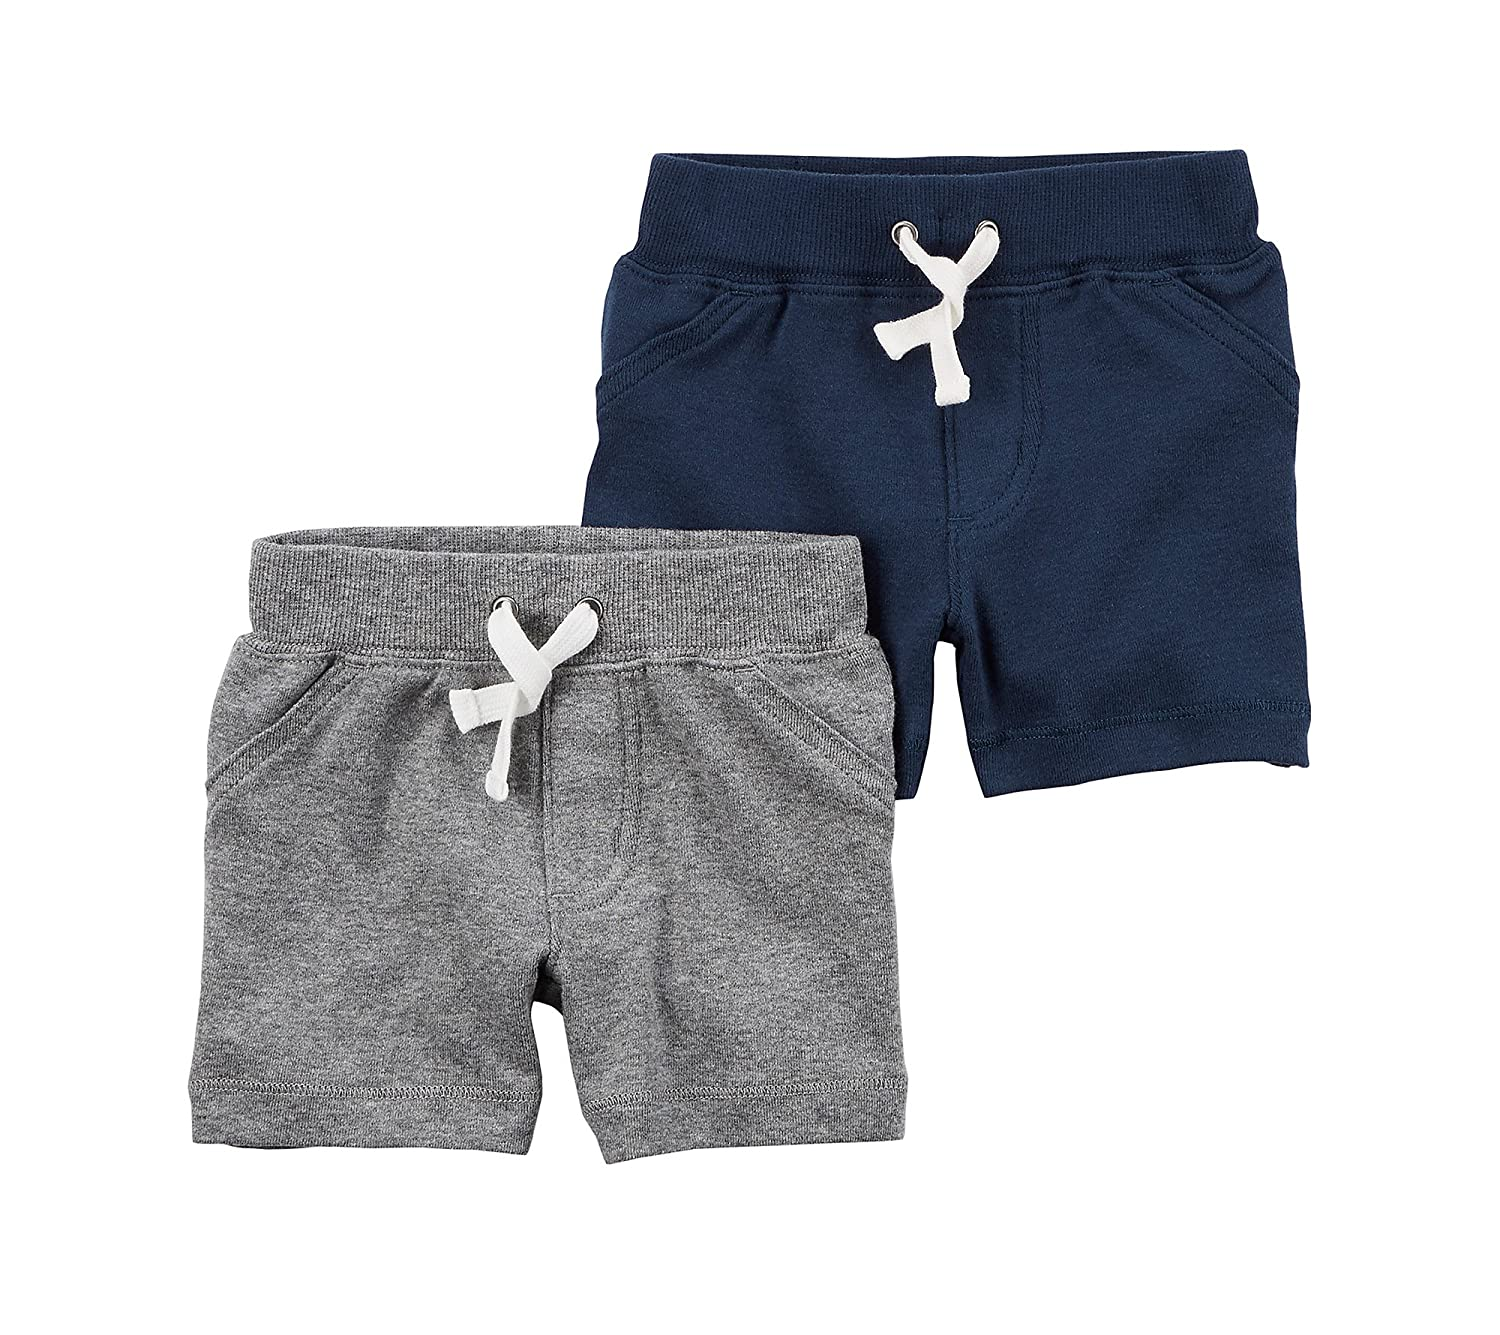 Carters Baby Boys 2-Pack Pants Carters P000462117